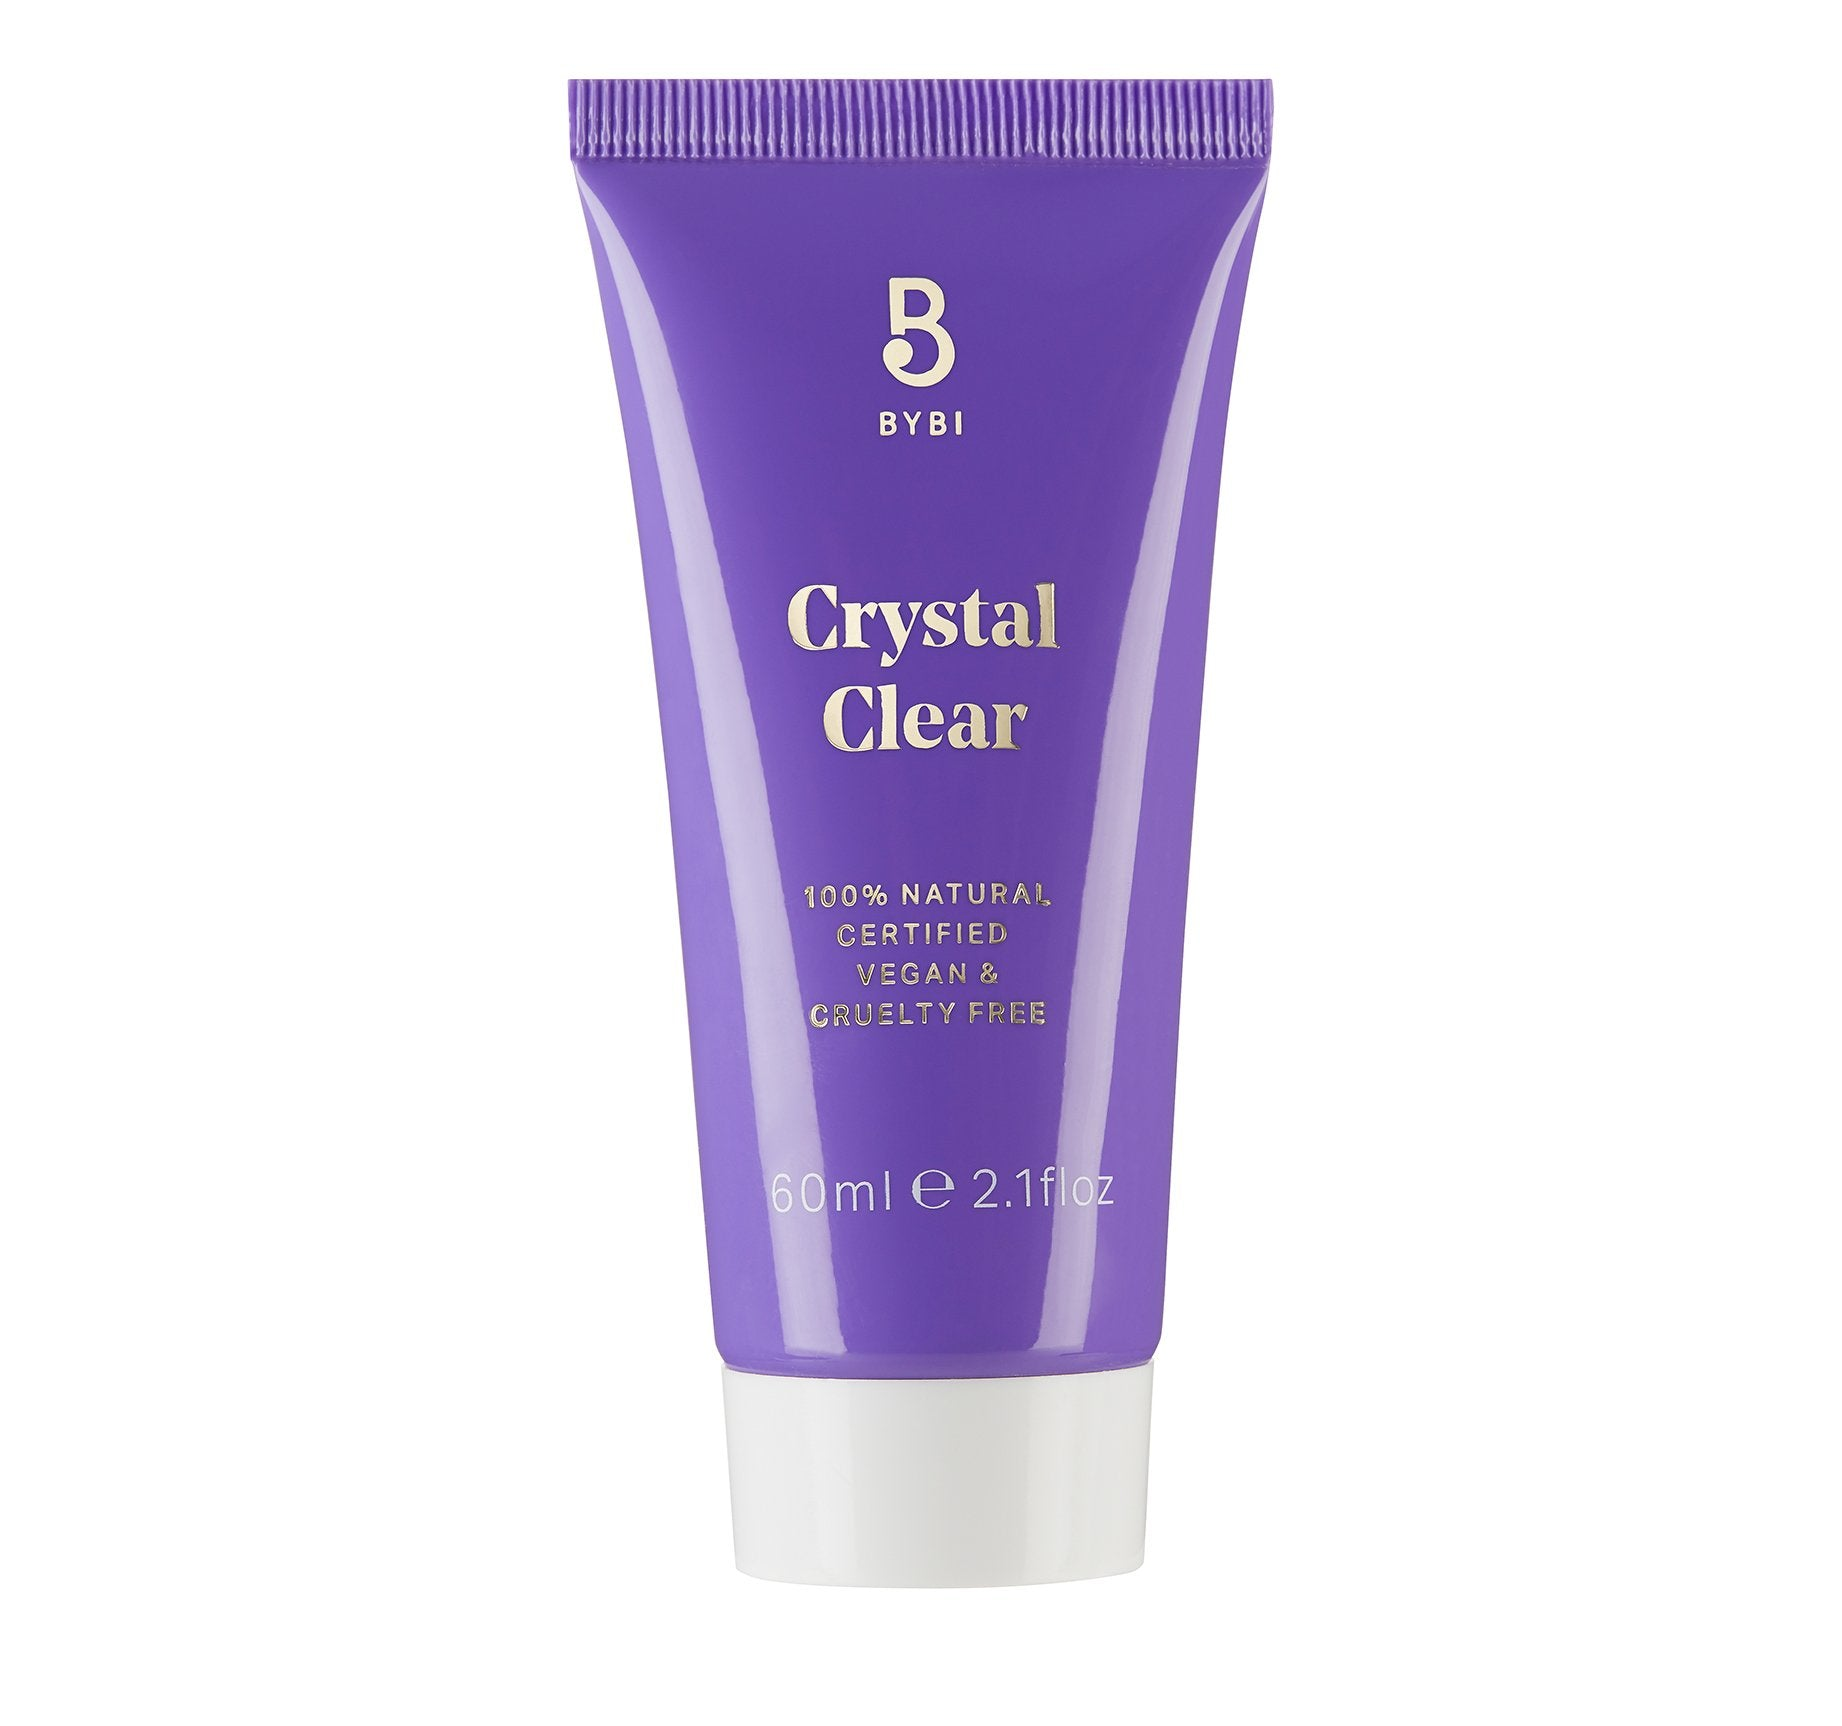 CRYSTAL CLEAR FACIAL CLEANSING GEL, view larger image